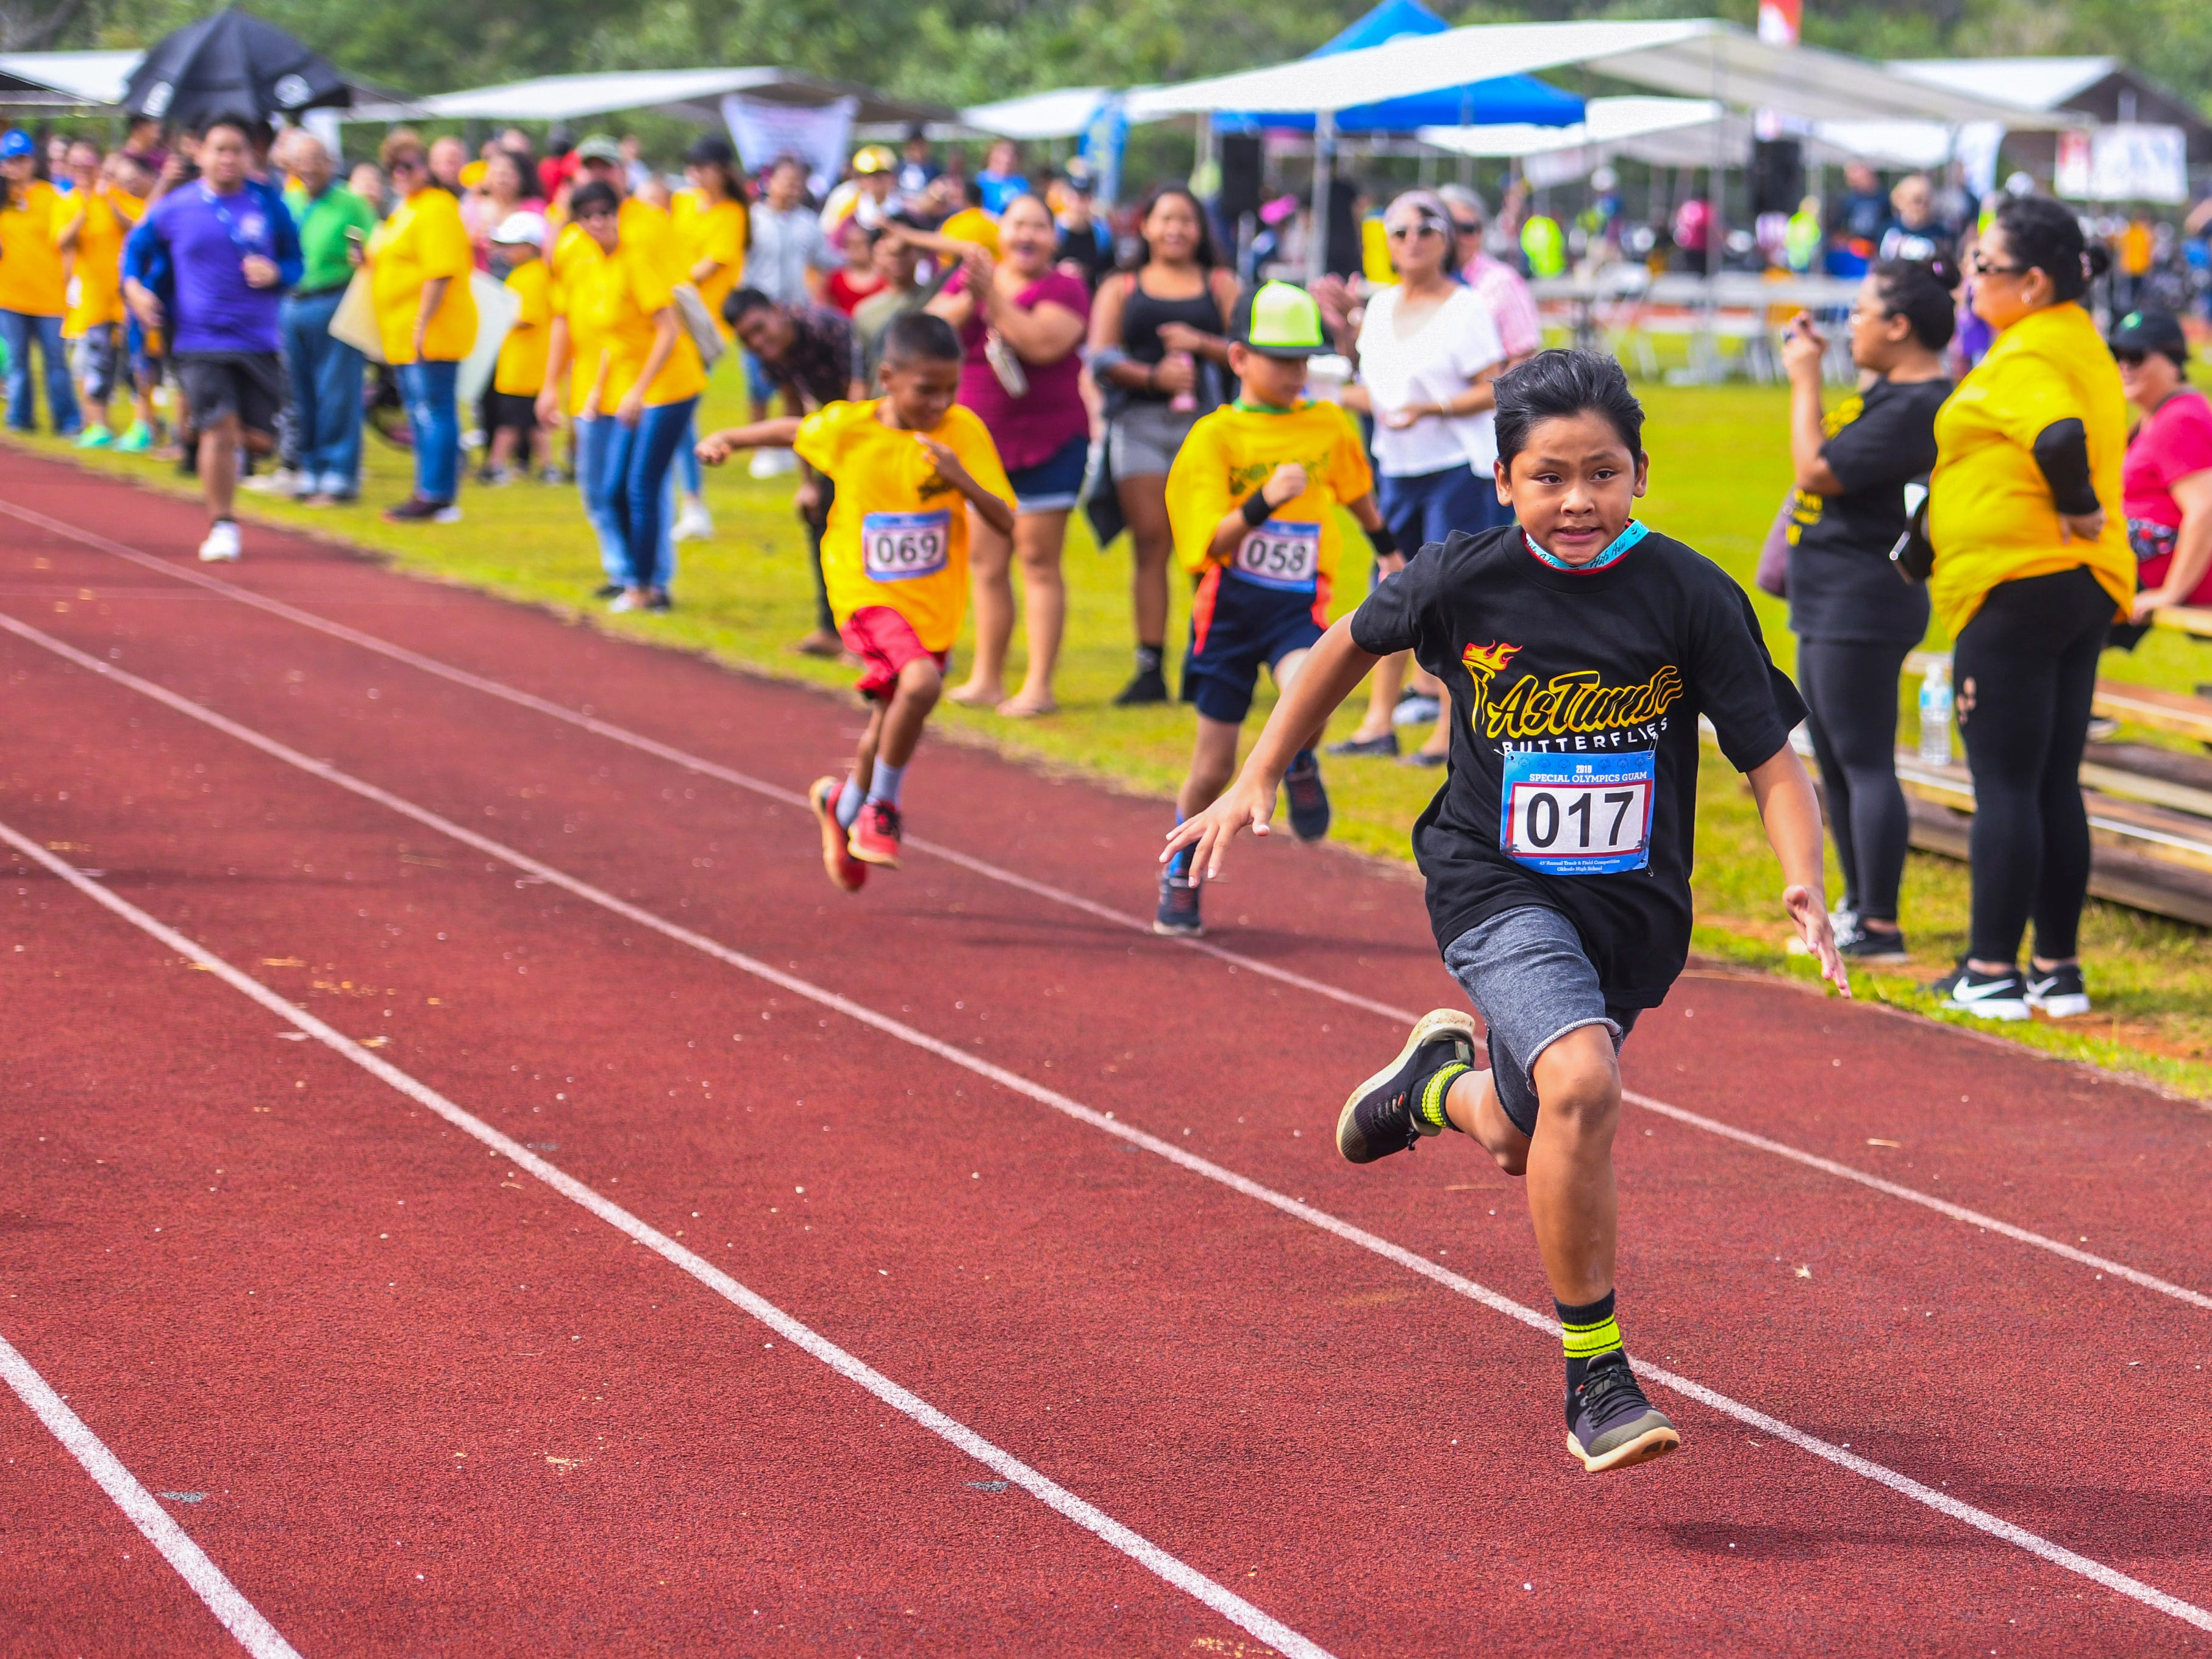 Astumbo Elementary School student Xavior Cruz (017) sprints ahead of other Special Olympians during a 50-meter race at the 43rd Special Olympics Guam Track & Field competition at Okkodo High School in Dededo on Saturday, March 16, 2019.